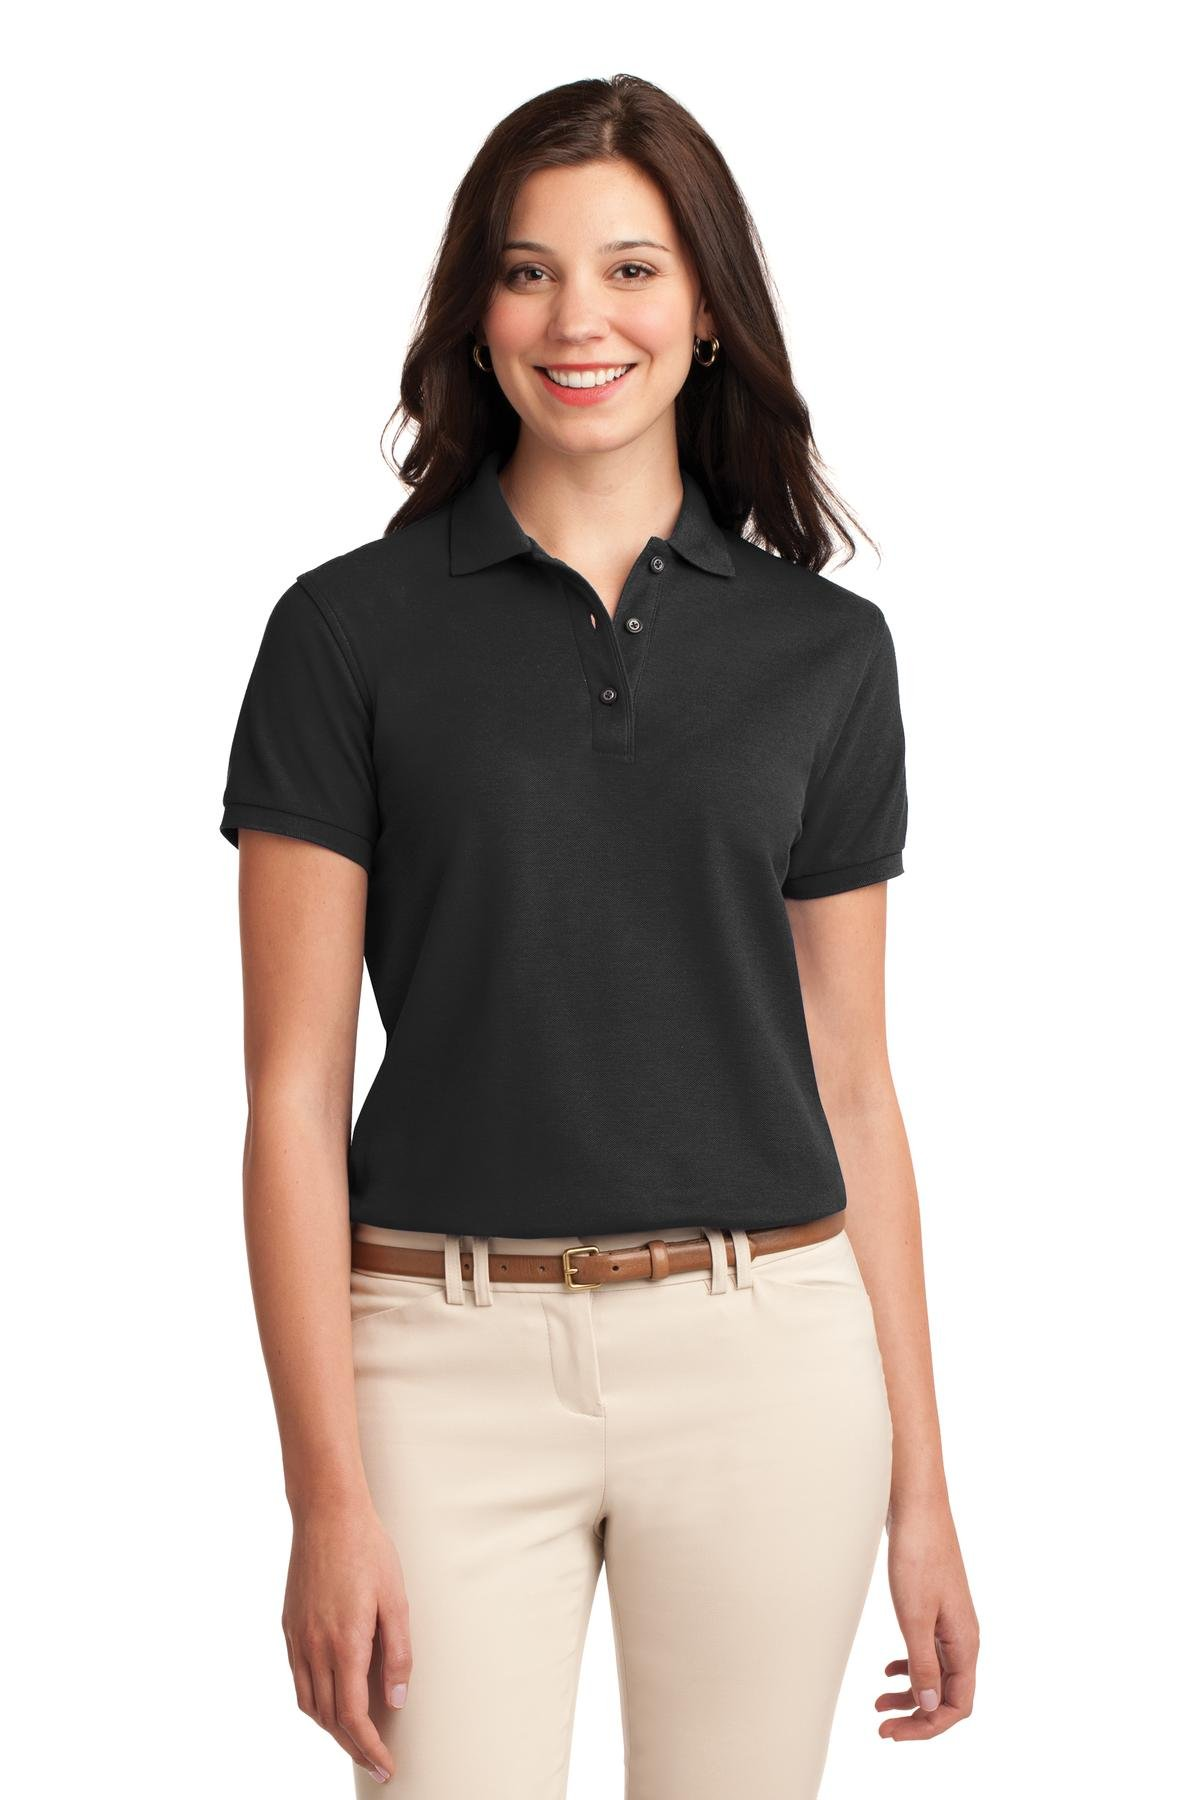 Port Authority Women's Silk Touch Polo M Black